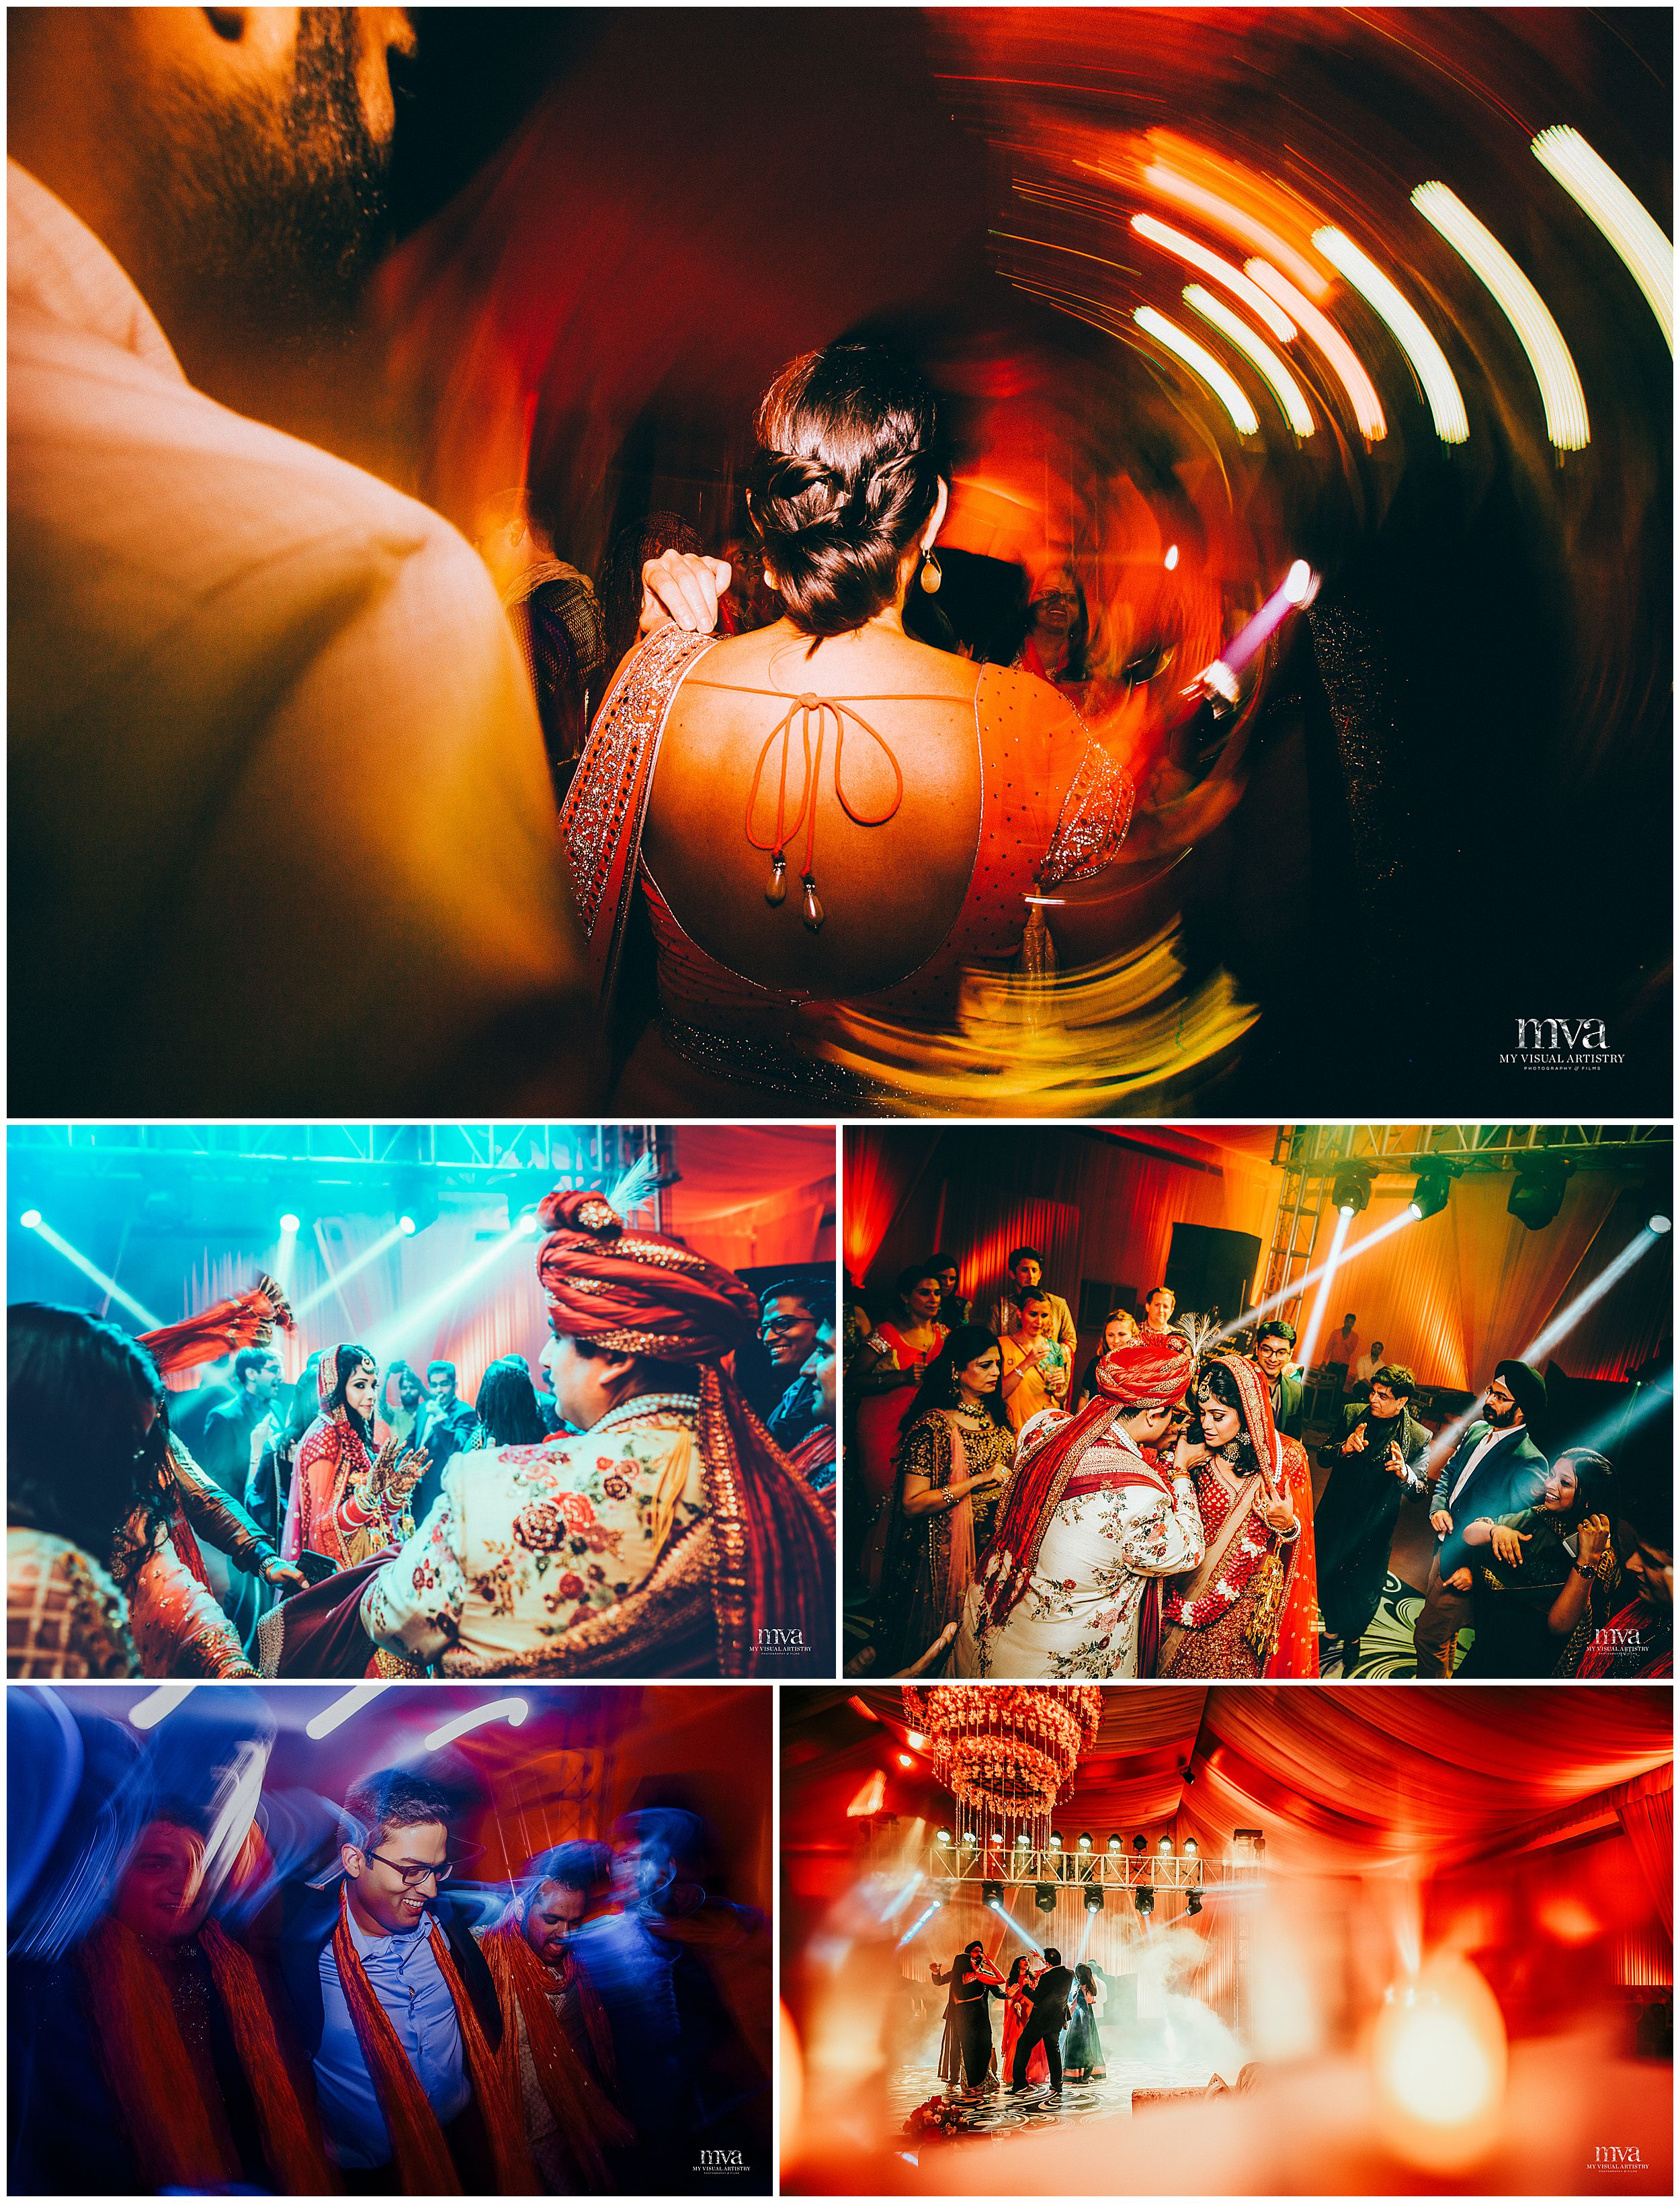 SIDDARTH_SAKSHI_MYVISUALARTISTRY_WEDDING_PHOTOGRAPHY_MVA_EROSHANGRILA_DELHI_0044.jpg